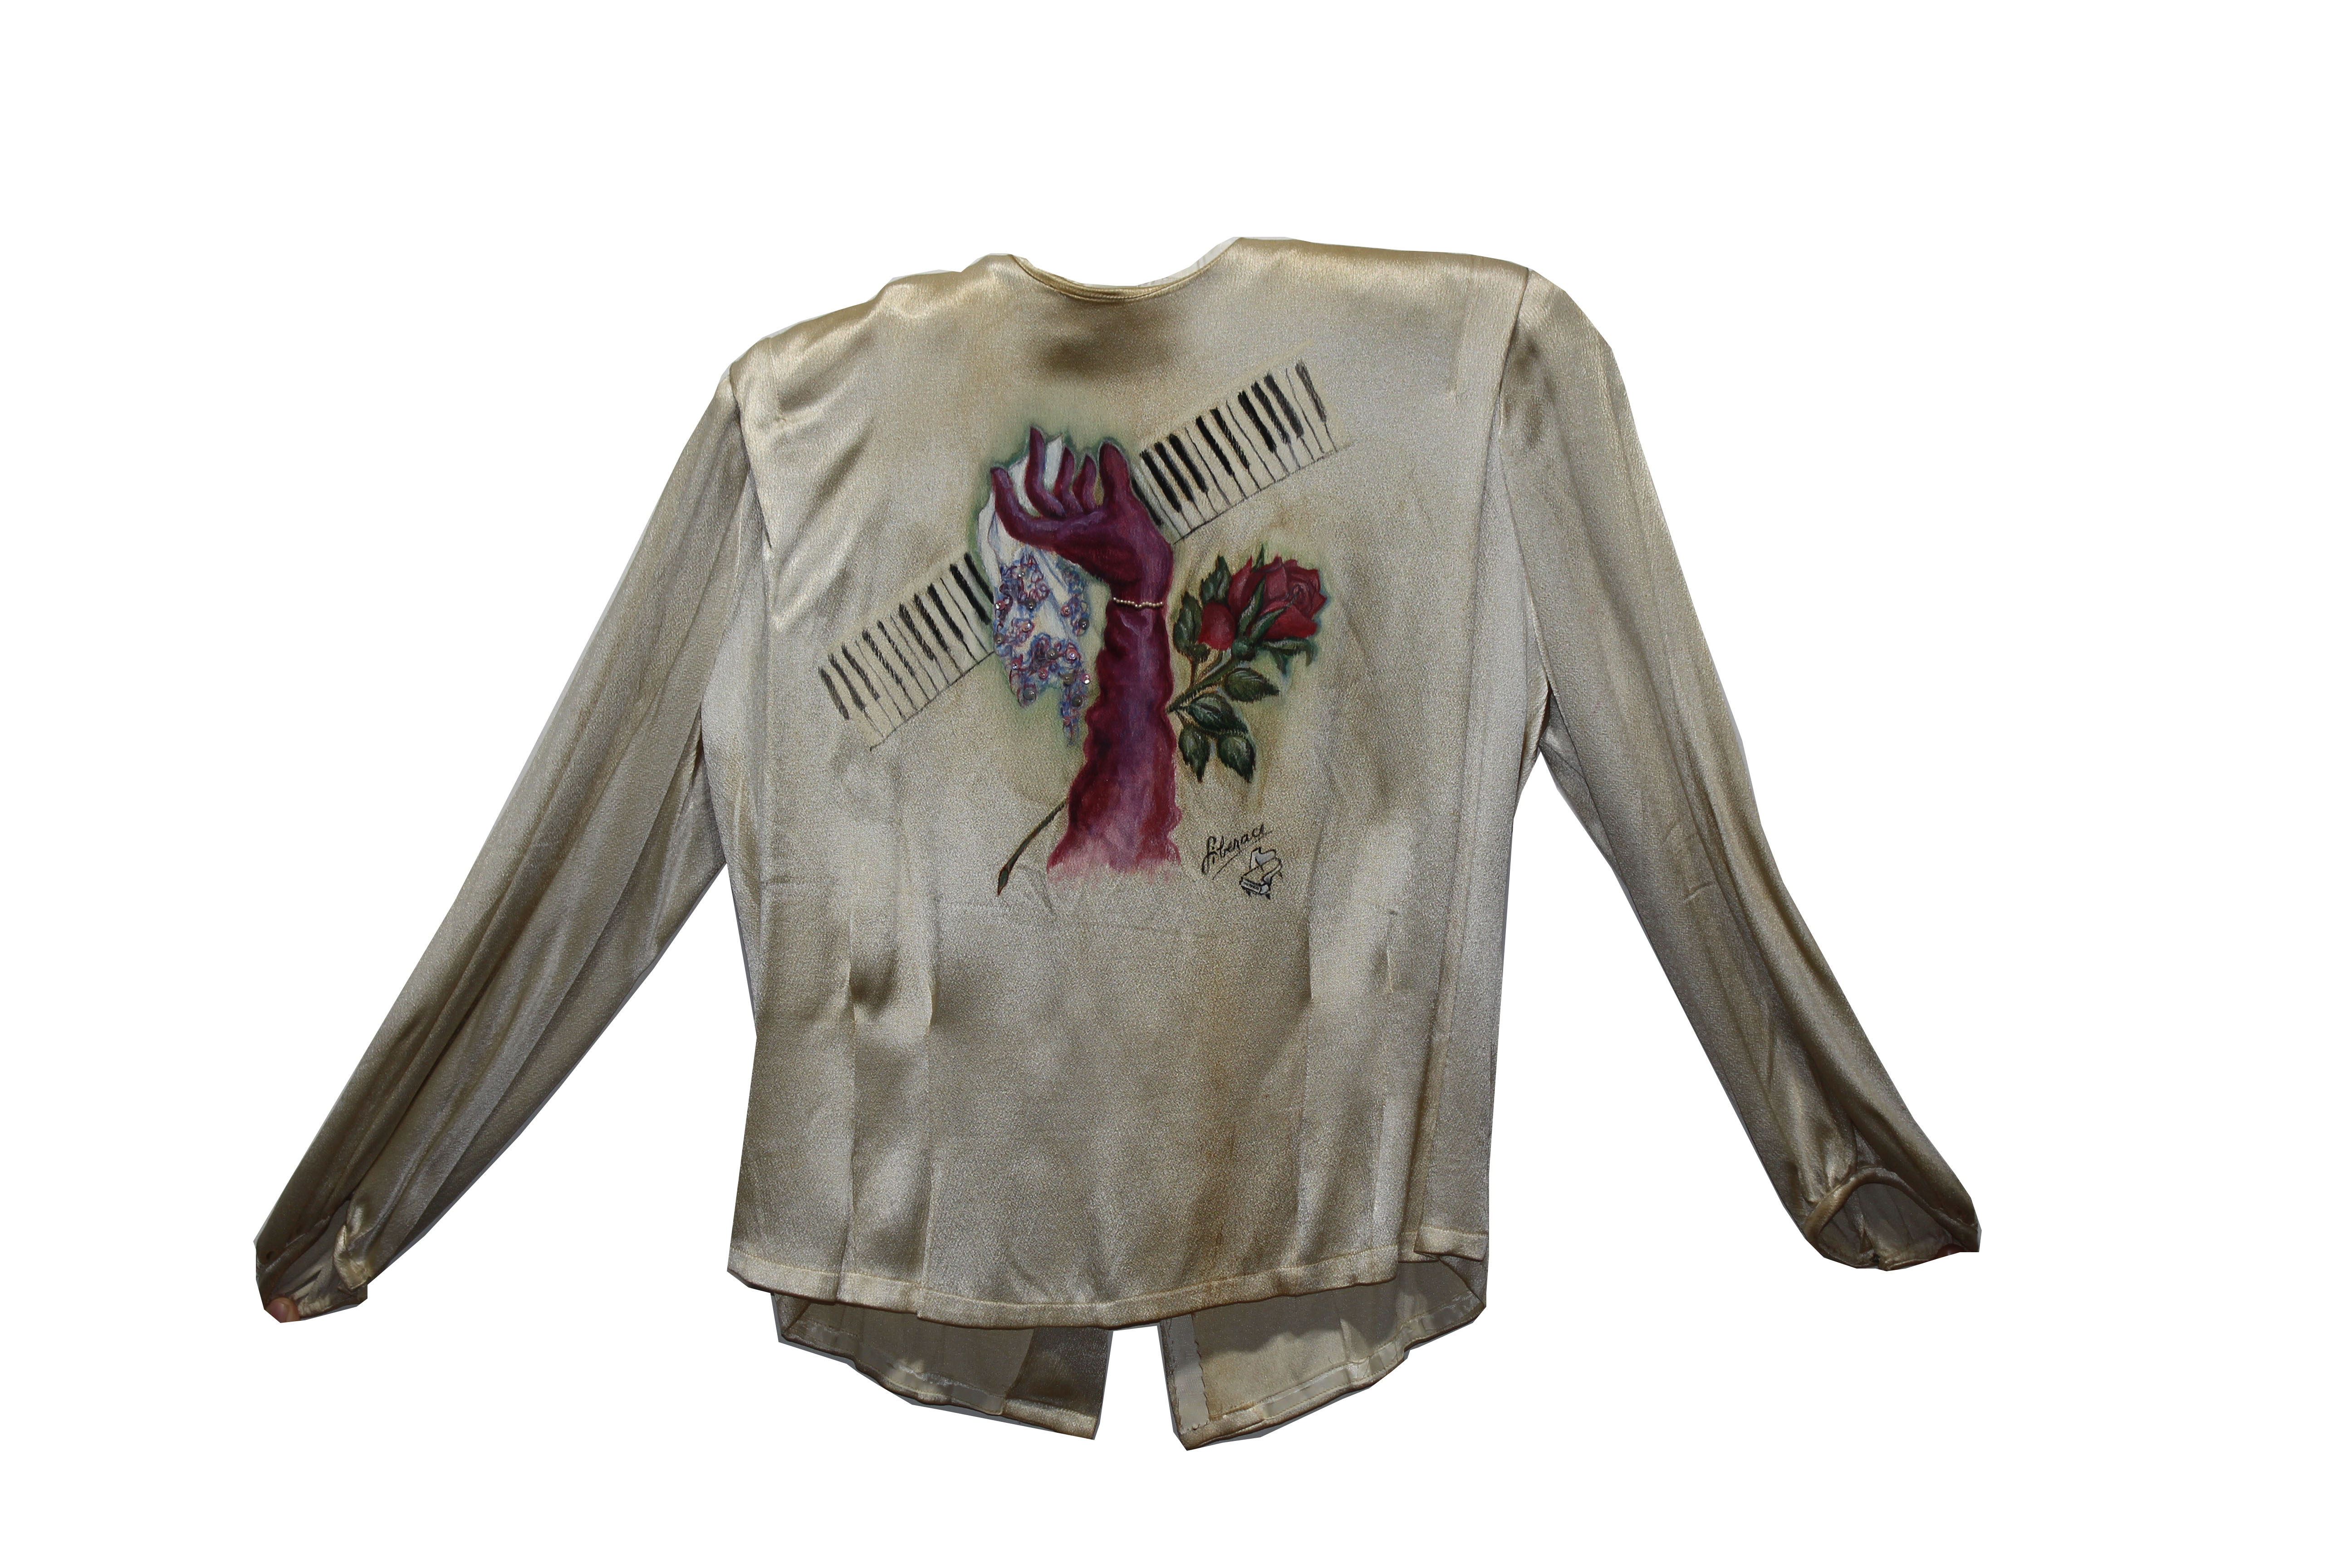 Lot 19 - Rare Hildegarde Blouse, Handpainted by Liberace